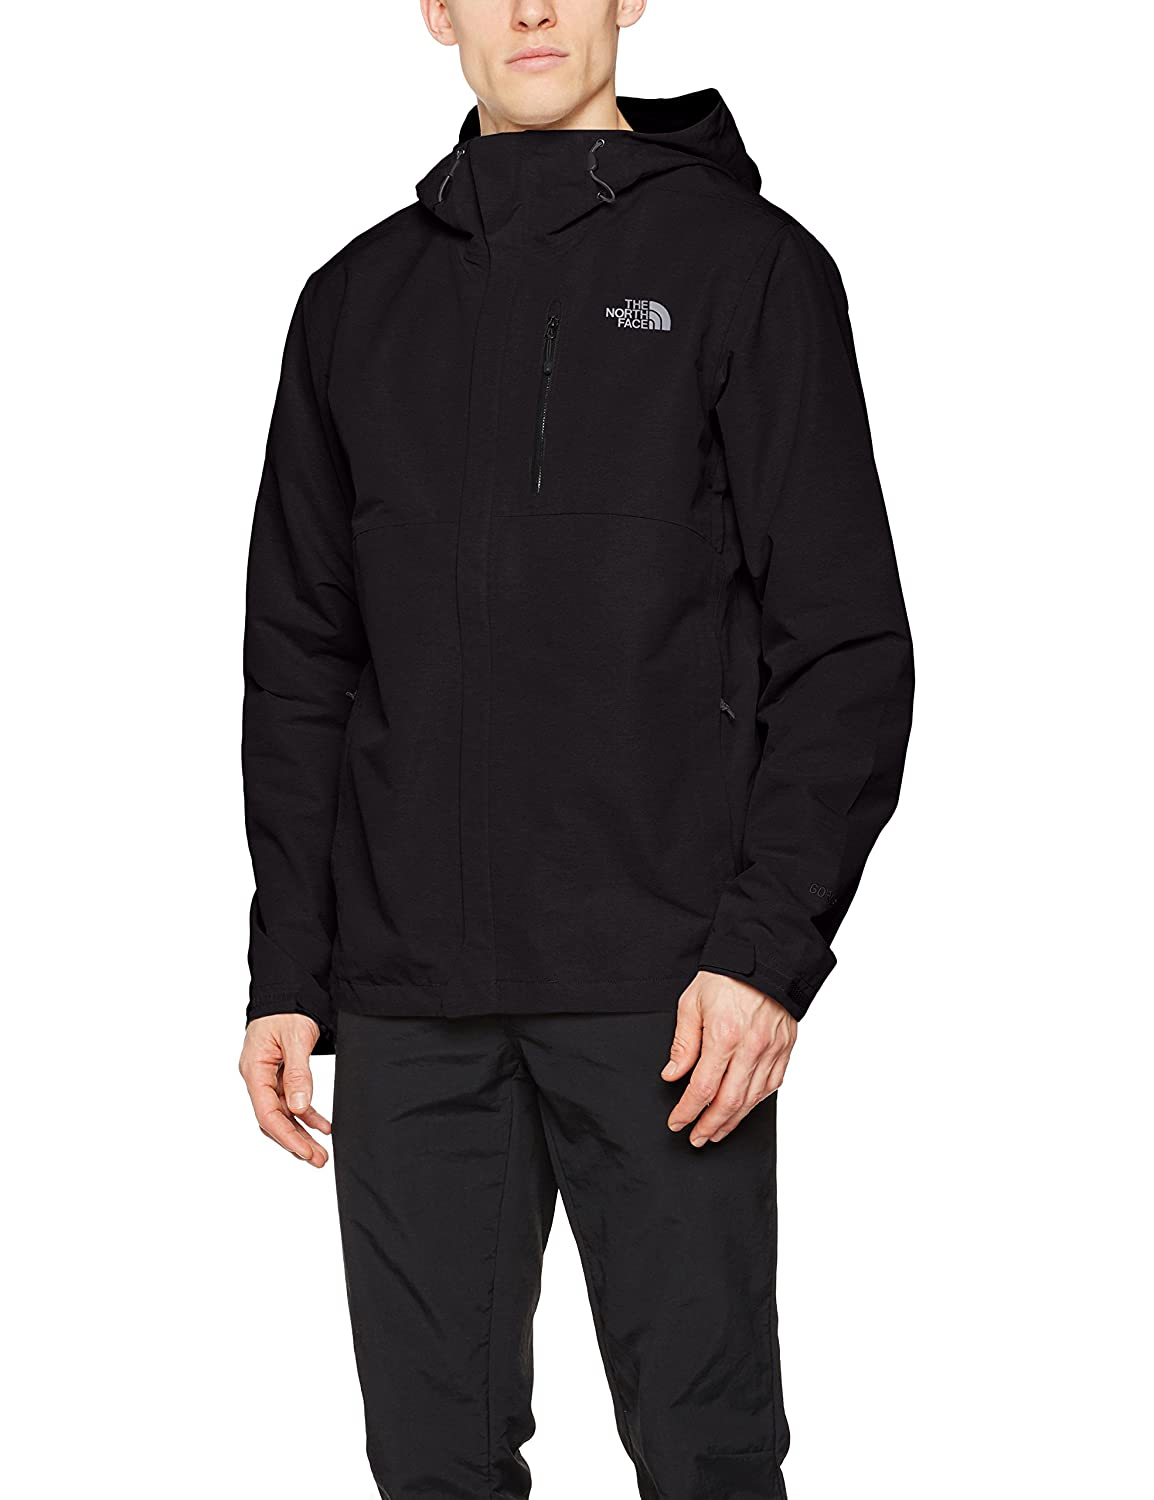 reacondicionado the north face